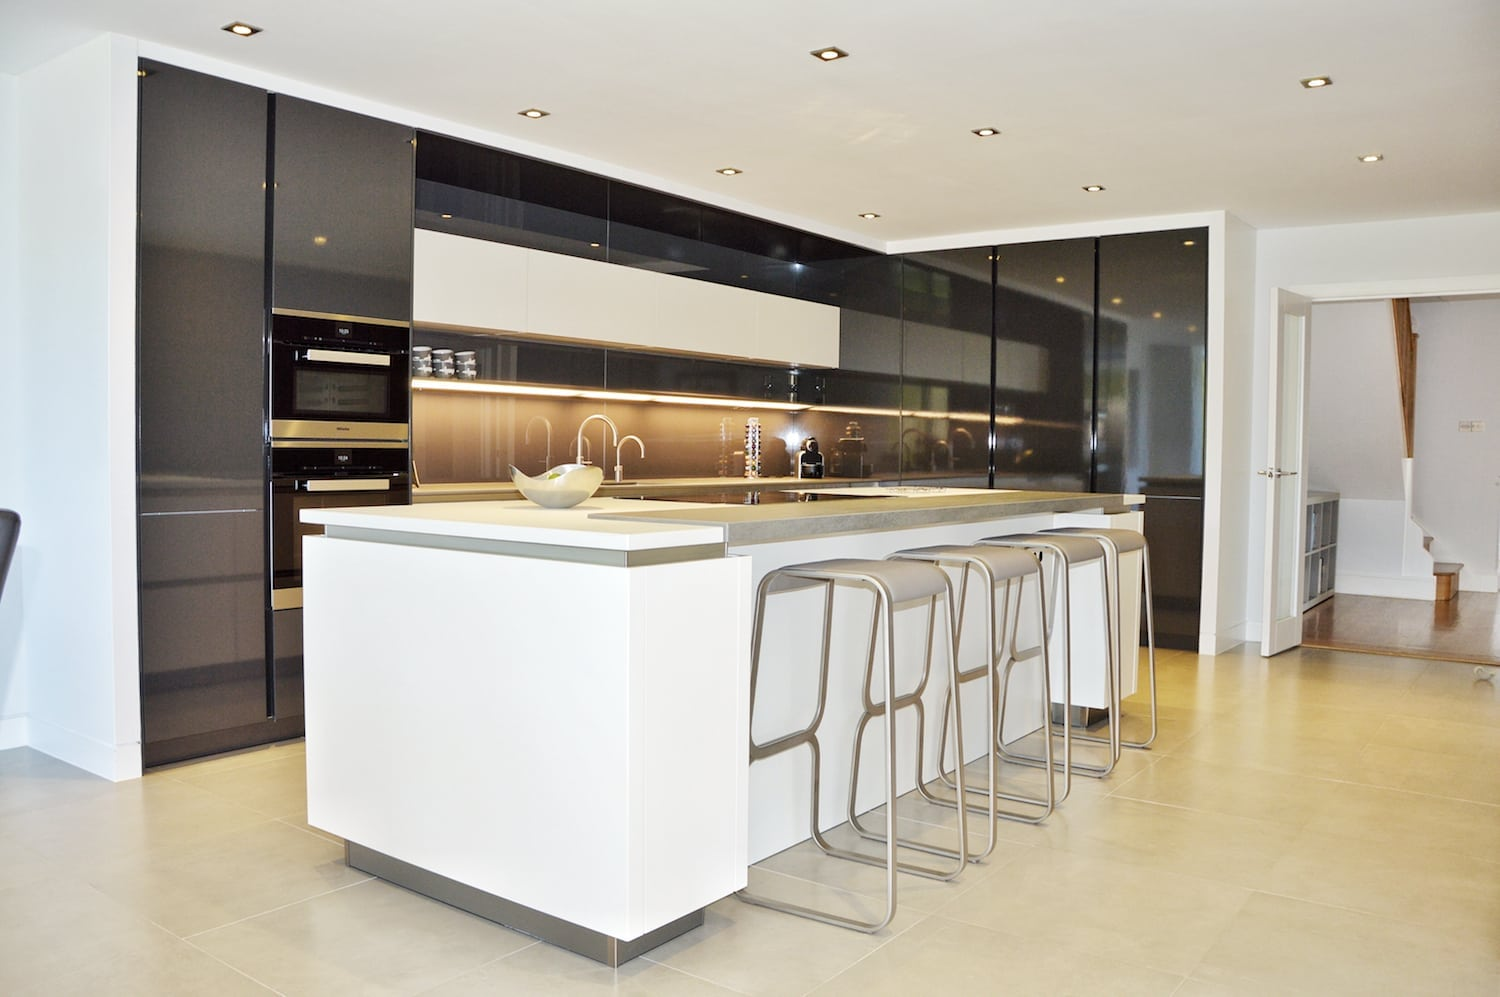 Handleless SieMatic kitchen